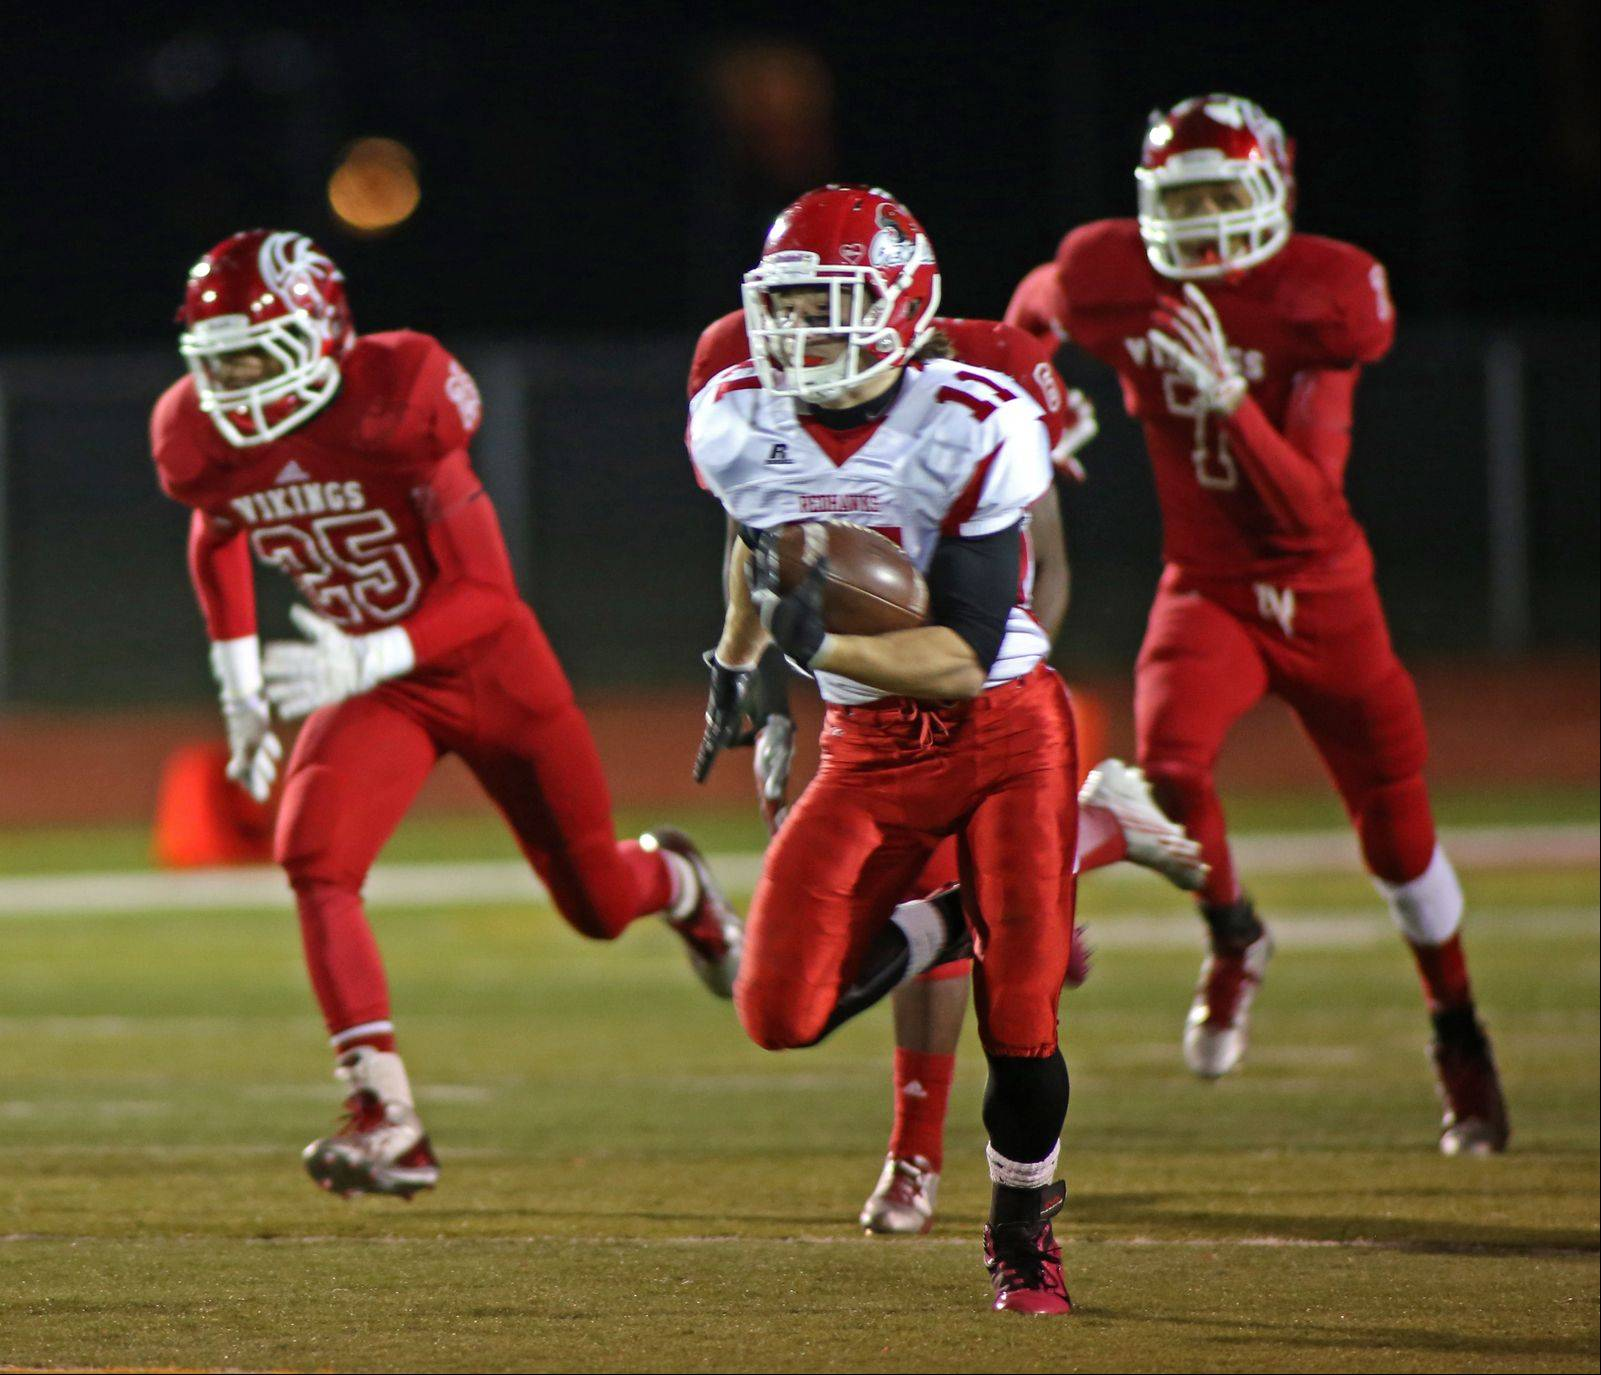 Naperville Central's Ben Andreas runs for 80 yards to score the game-winning touchdown, giving the Redhawks a 24-21 win.